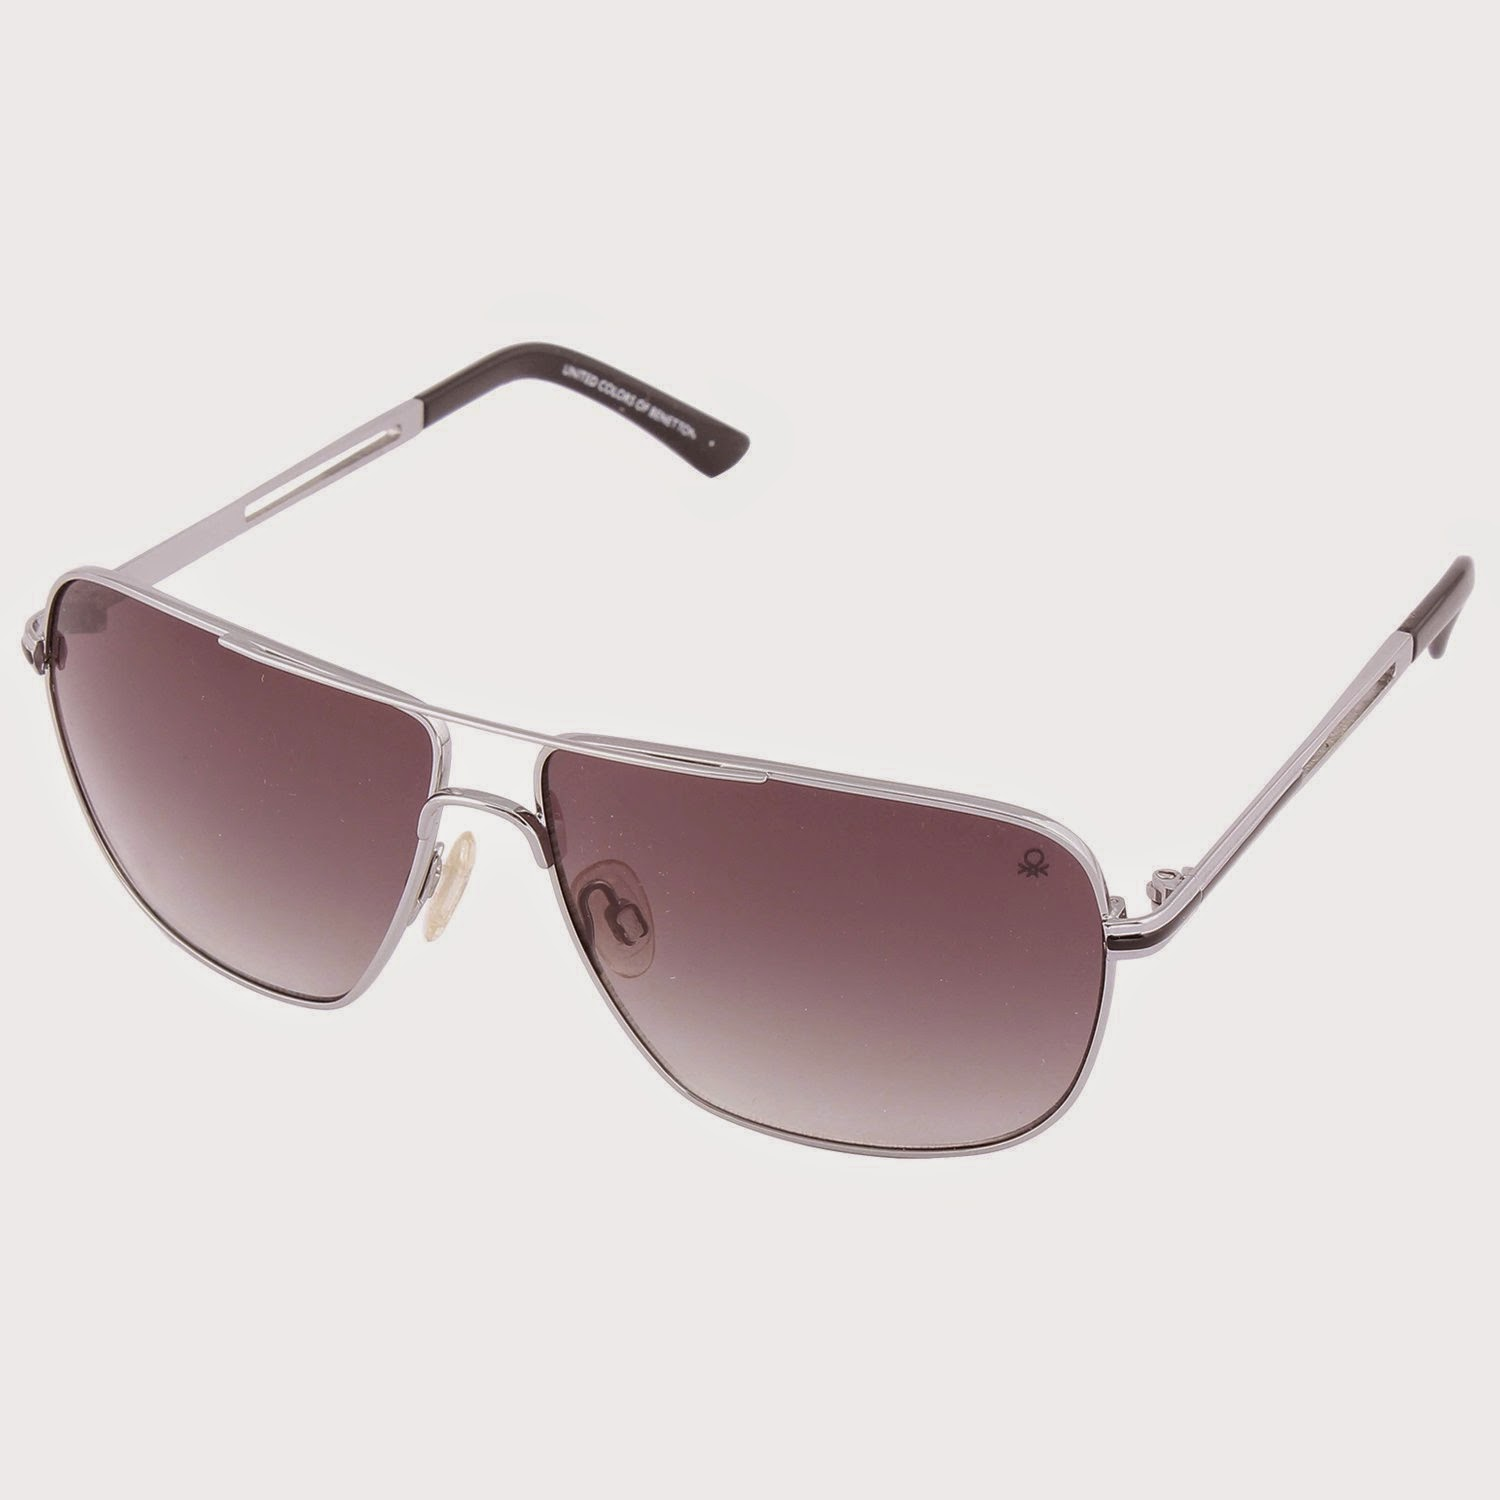 217ba1668e FLAT 60% offers on Global brand United Colors of Benetton Sunglasses in  amazon